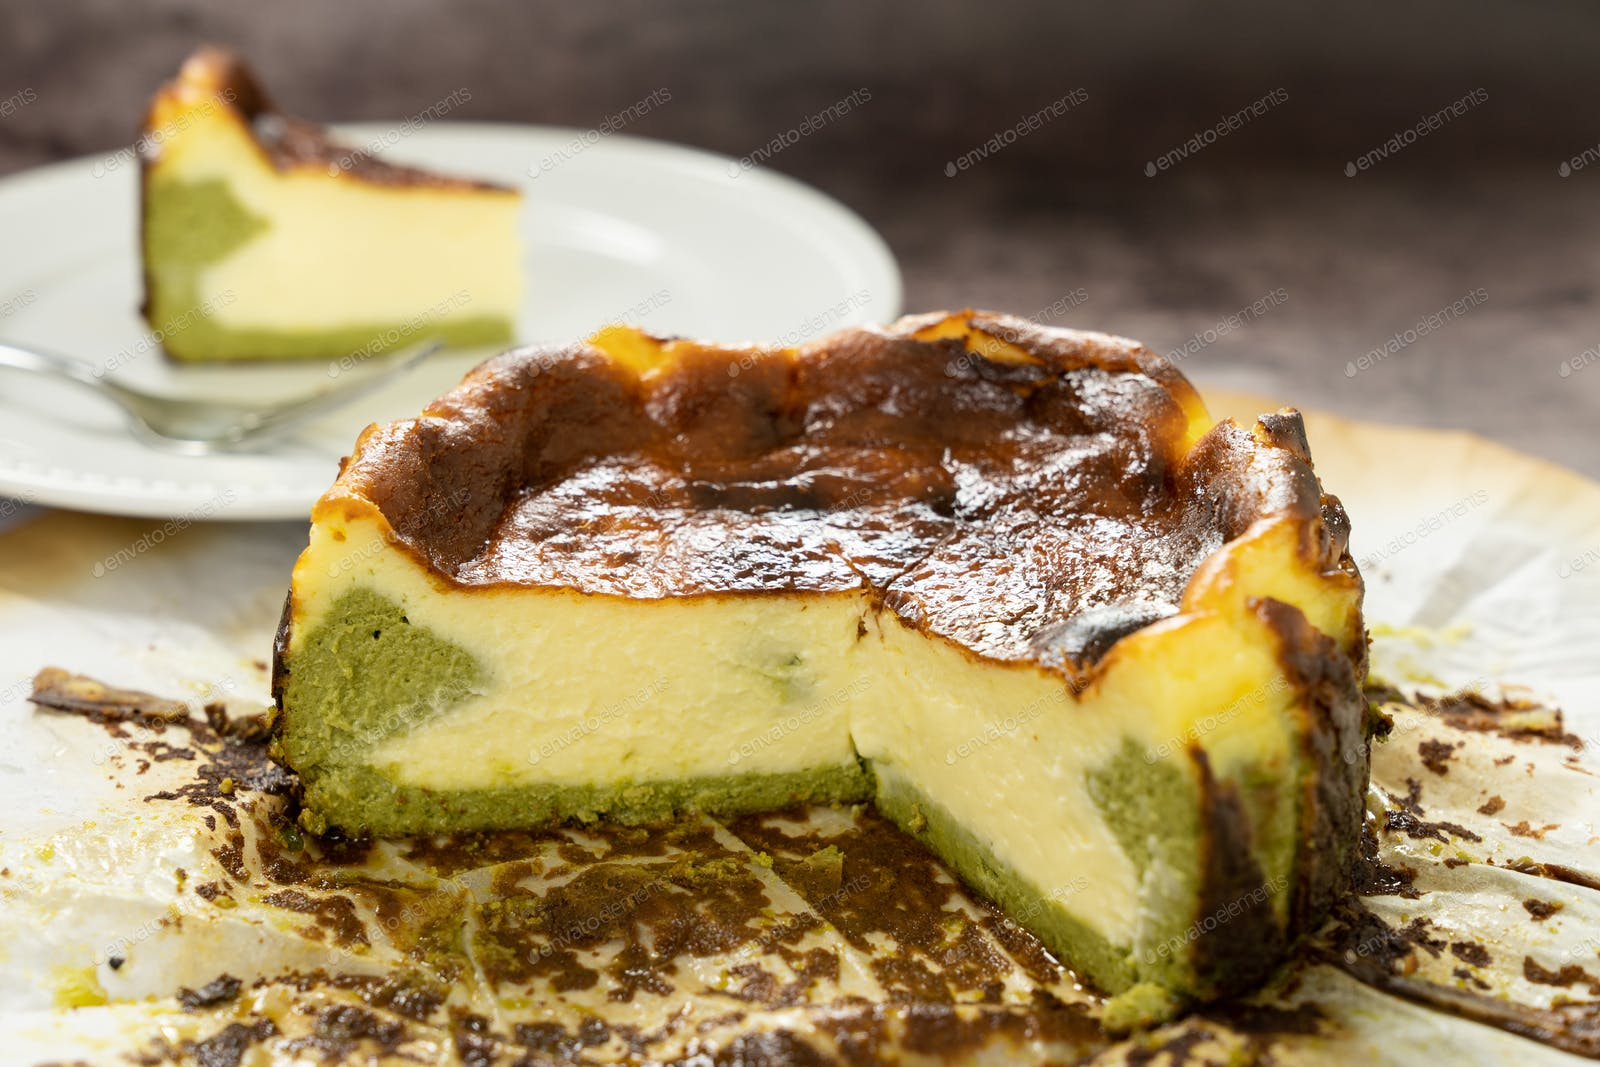 Matcha Basque Burnt Cheesecake Photo By Kenishirotie On Envato Elements